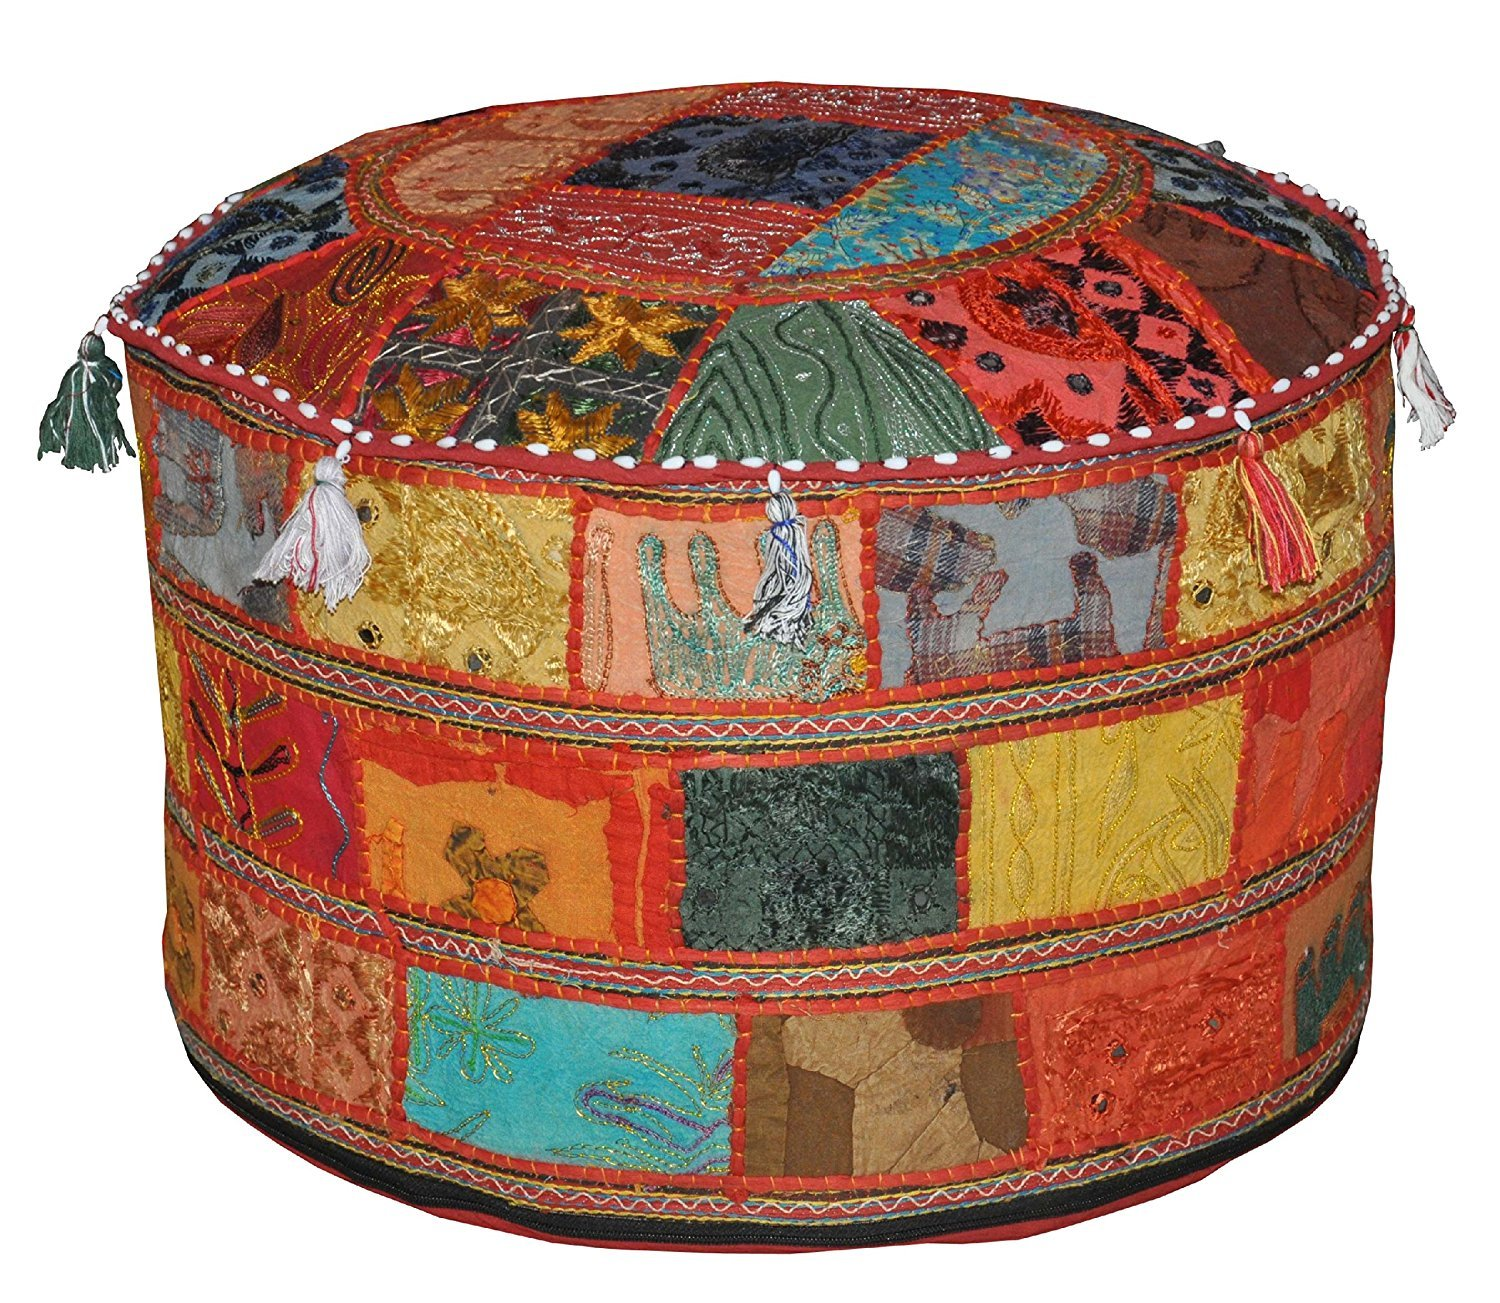 Indian Living Room Pouf, Foot Stool, Round Ottoman Cover Pouf,Traditional Handmade Decorative Patchwork Ottoman Cover,Indian Home Decor Cotton Cushion Ottoman Cover 22x15inche (Yellow) Dharohar Handicrafts